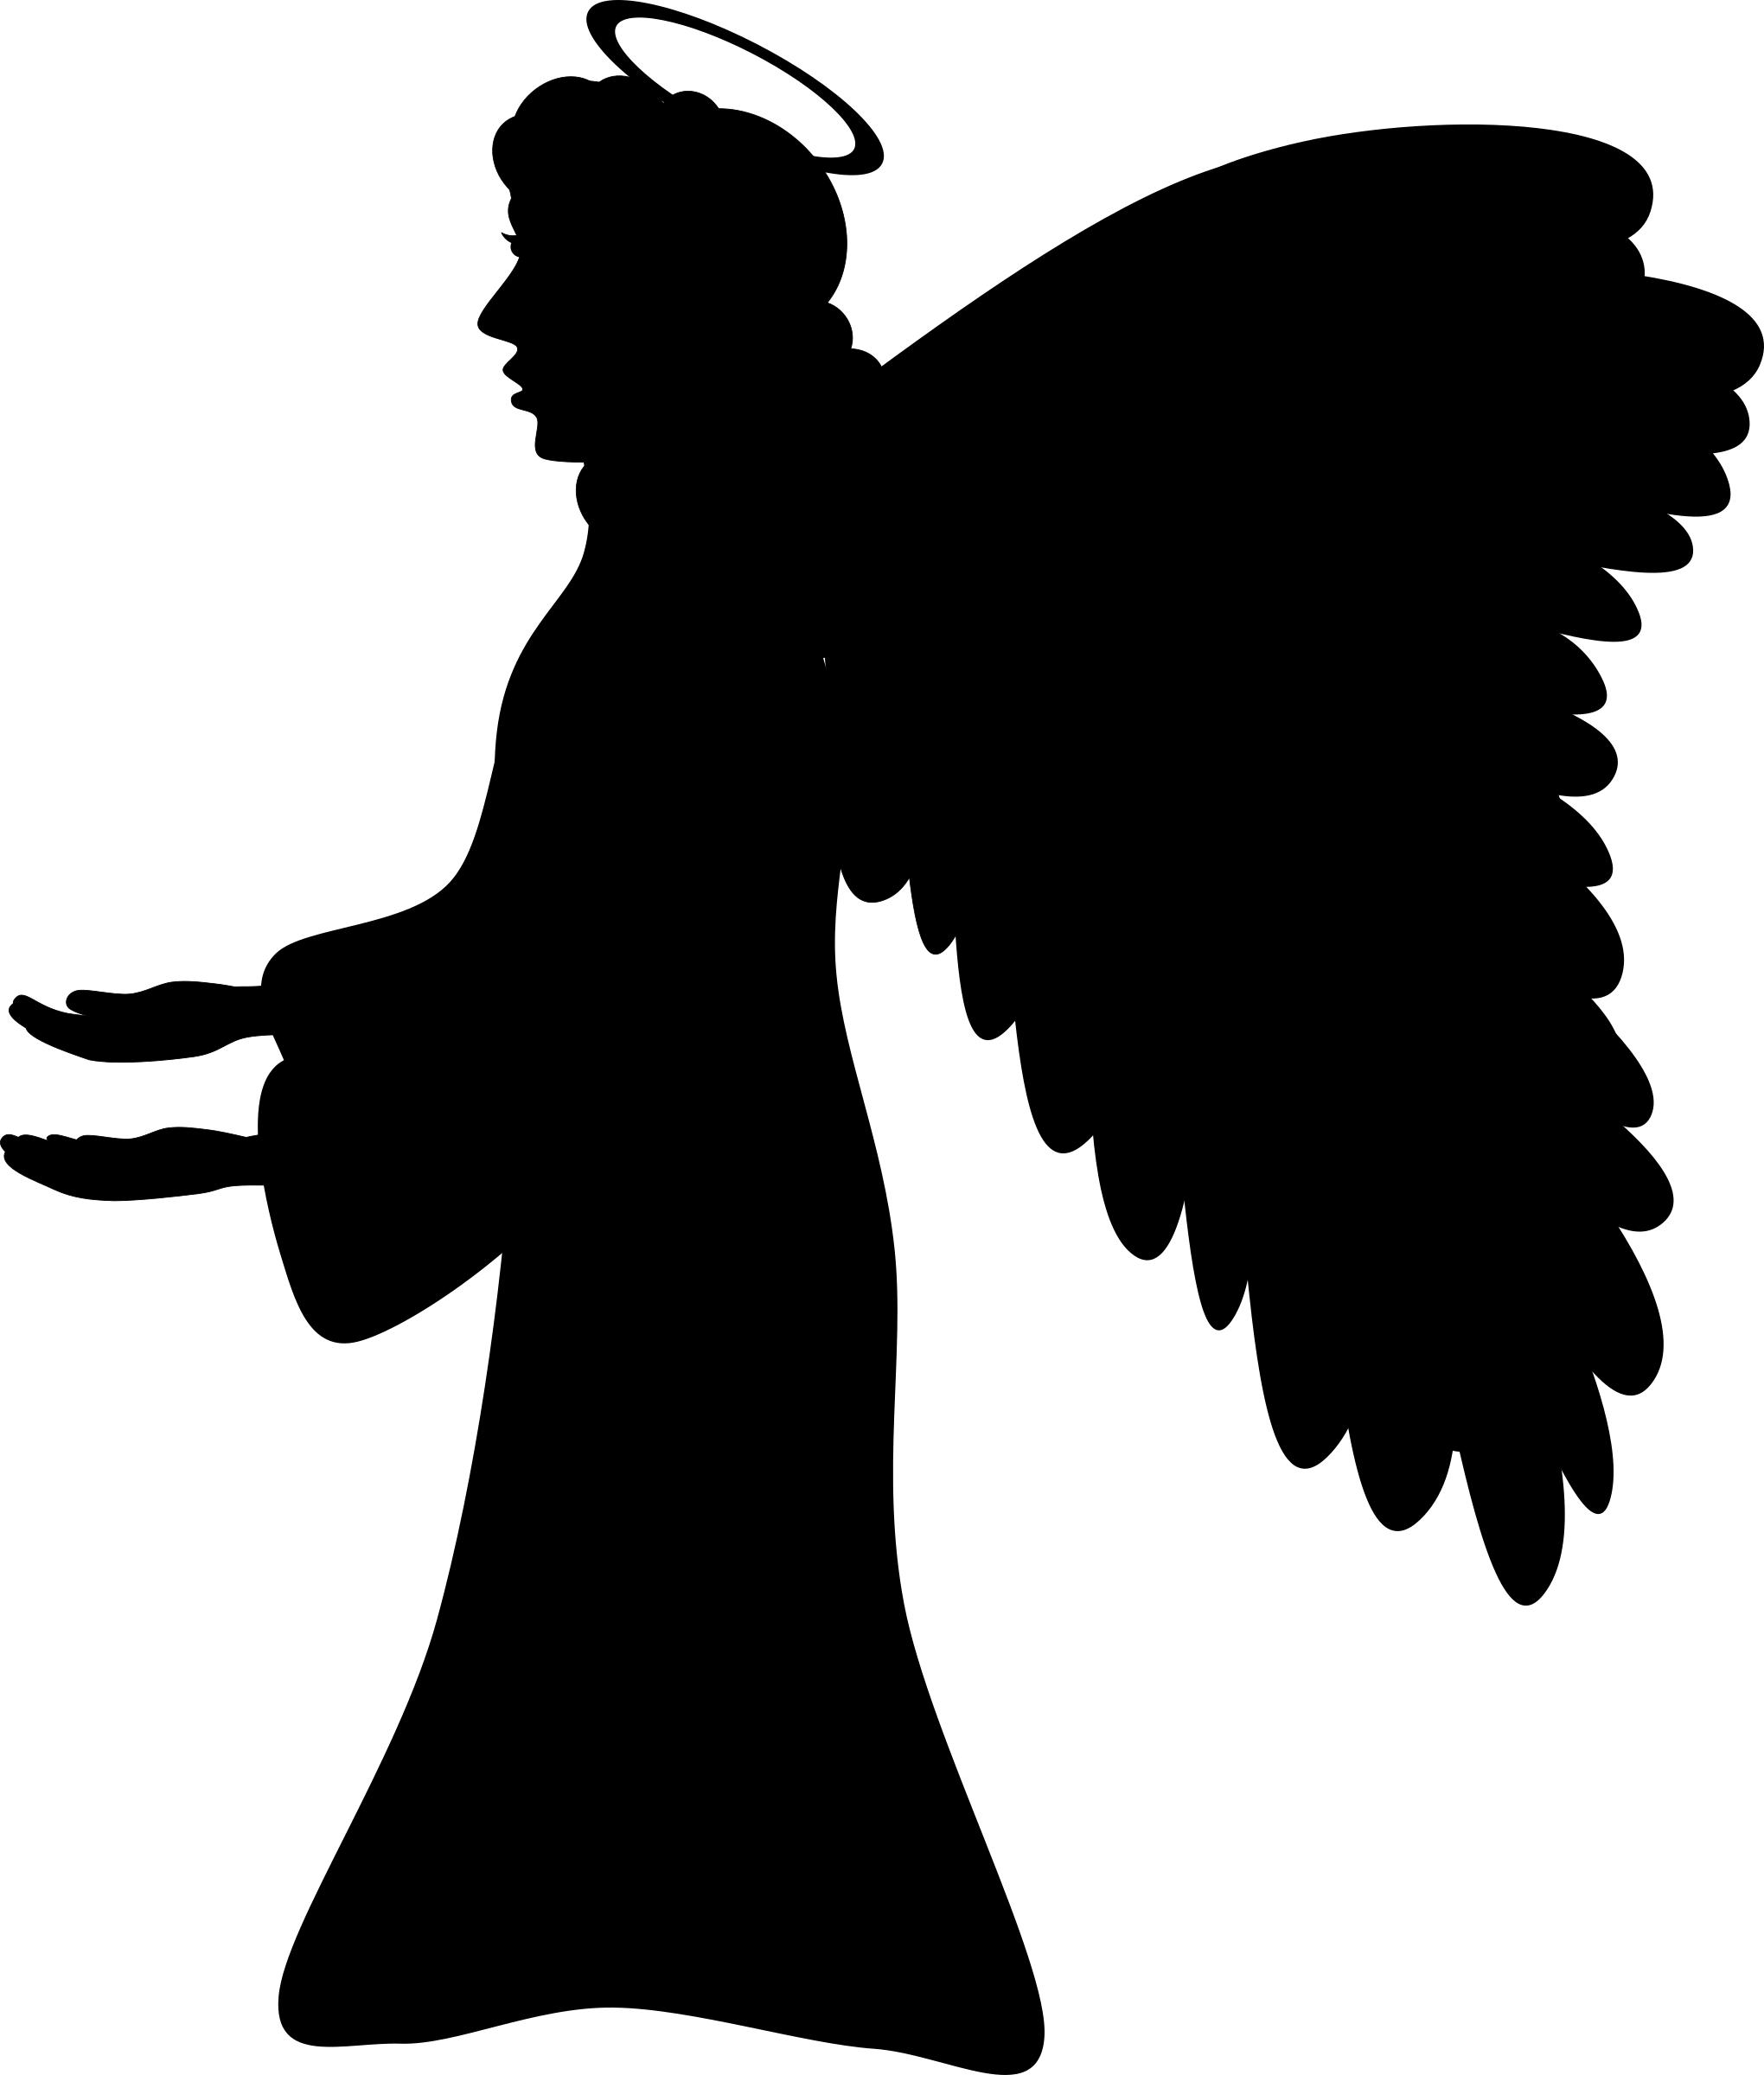 2040x2400 Angel's Silhouette Icons Png